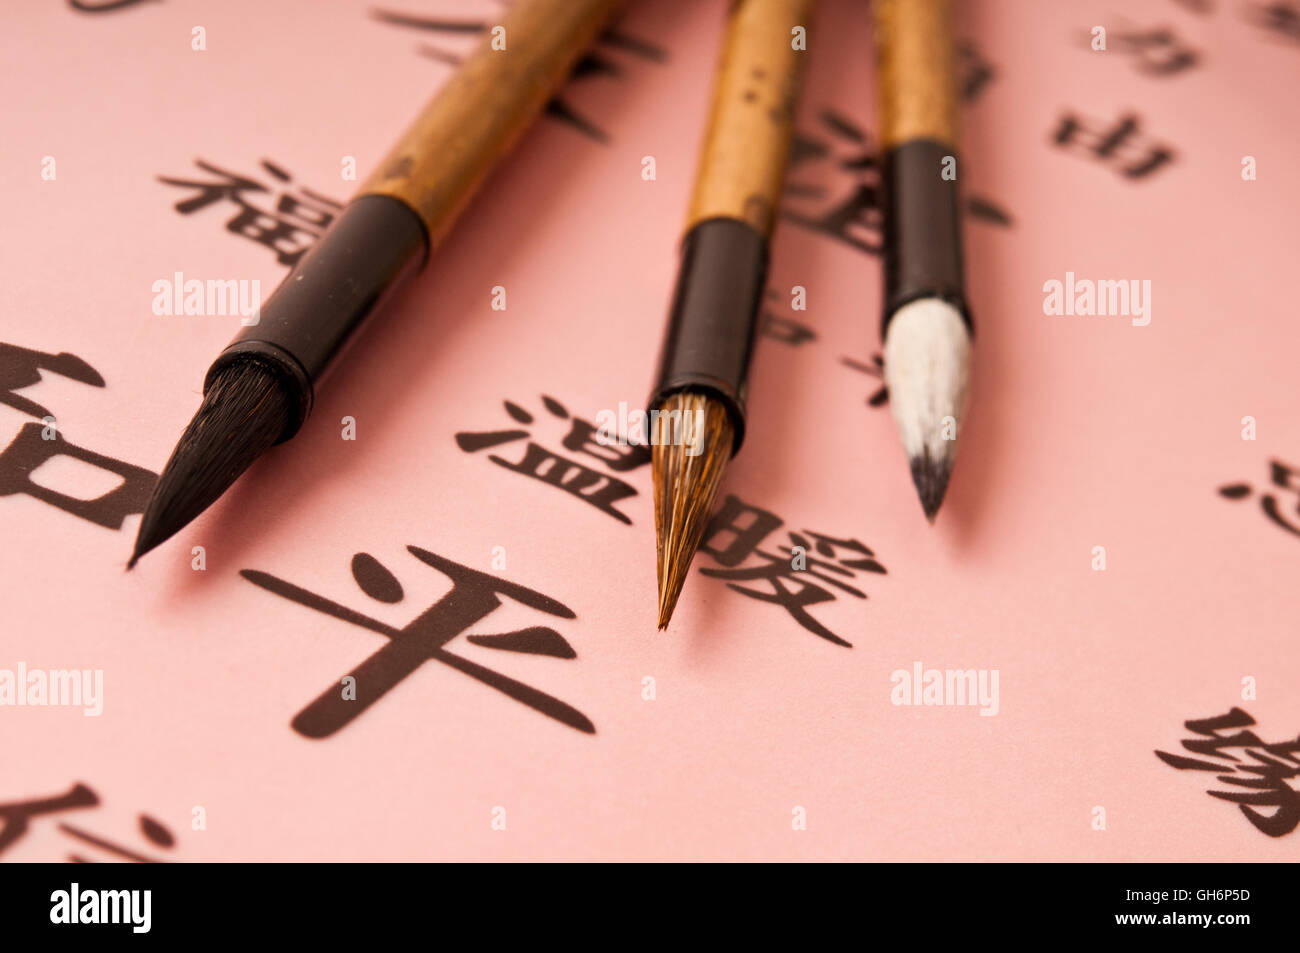 Chinese brushes for calligraphy - Stock Image